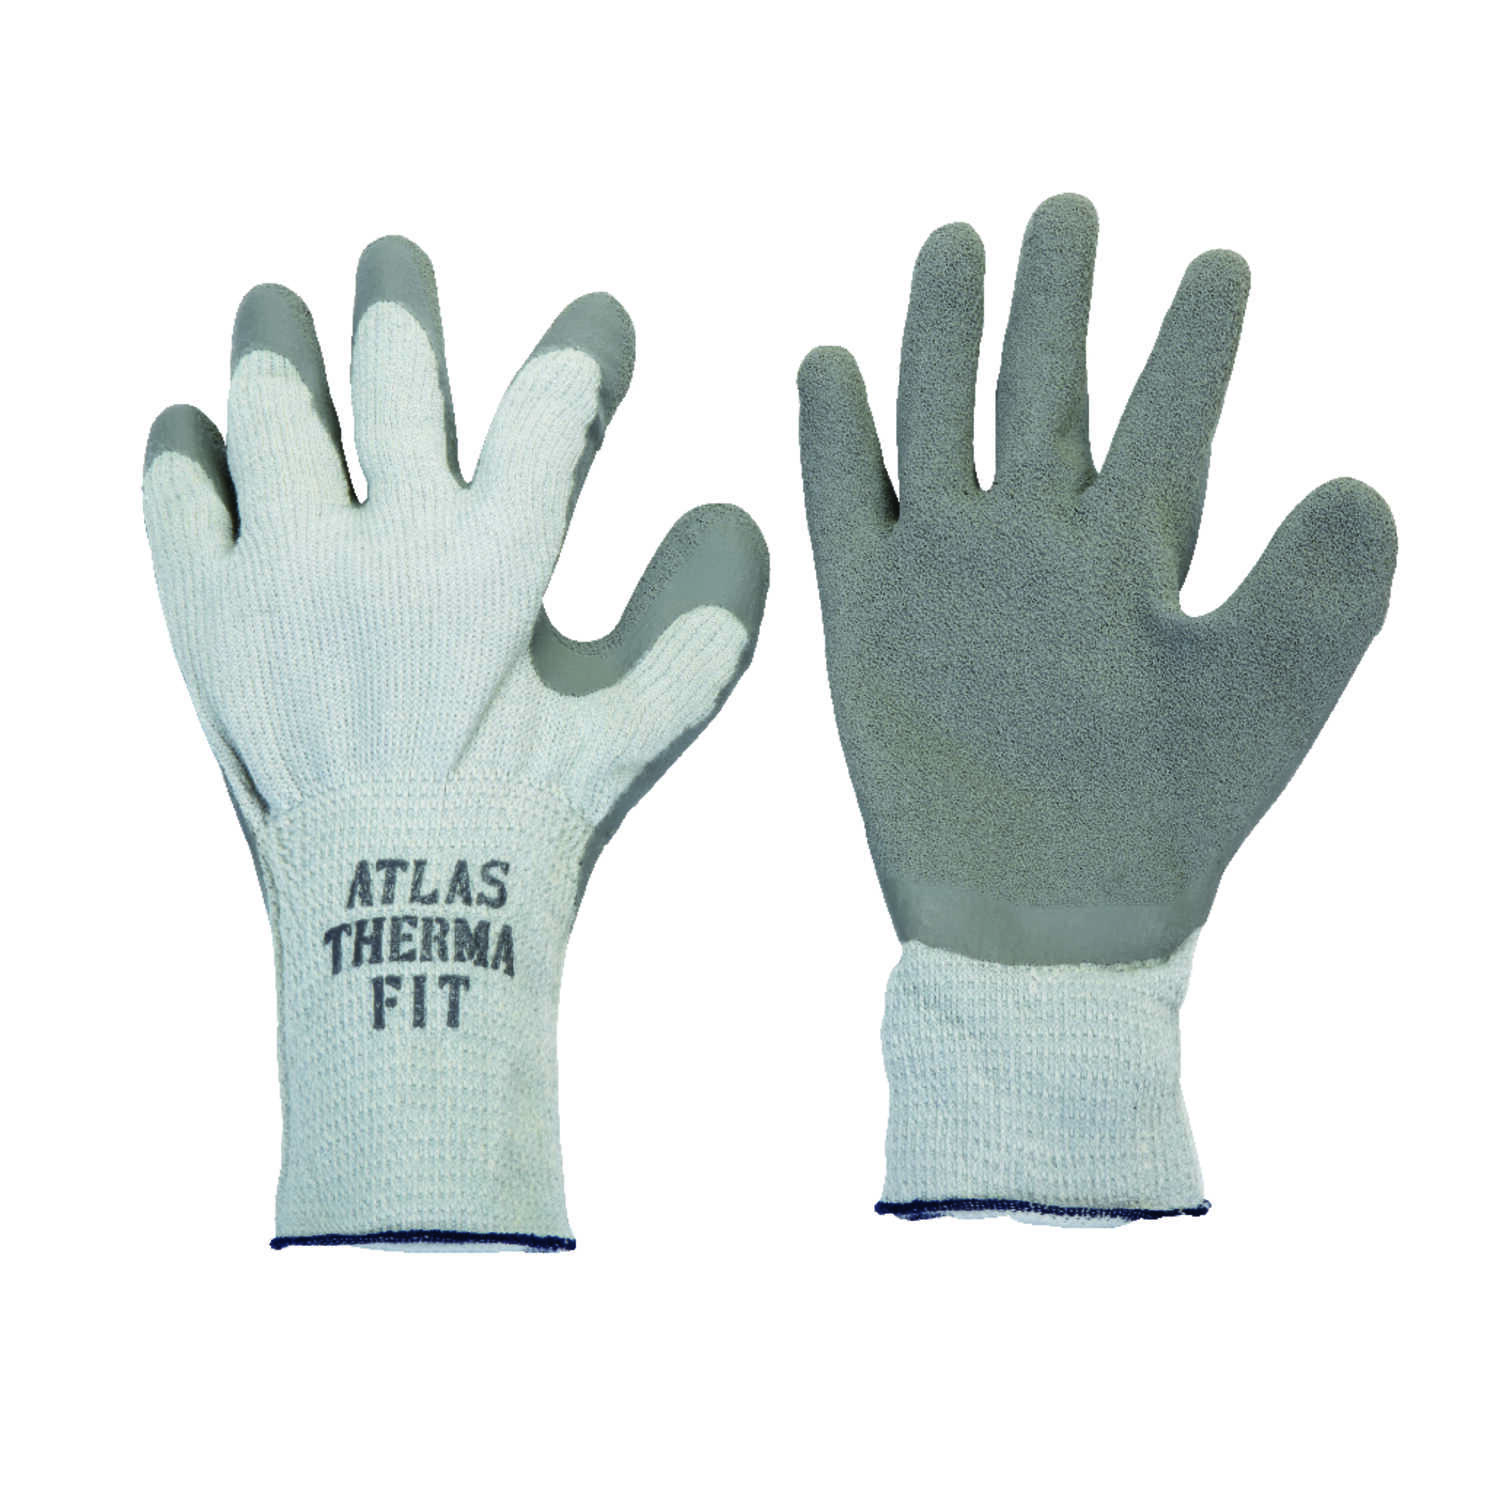 Atlas  Therma Fit  Unisex  Indoor/Outdoor  Rubber Latex  Cold Weather  Work Gloves  Gray  M  1 pair